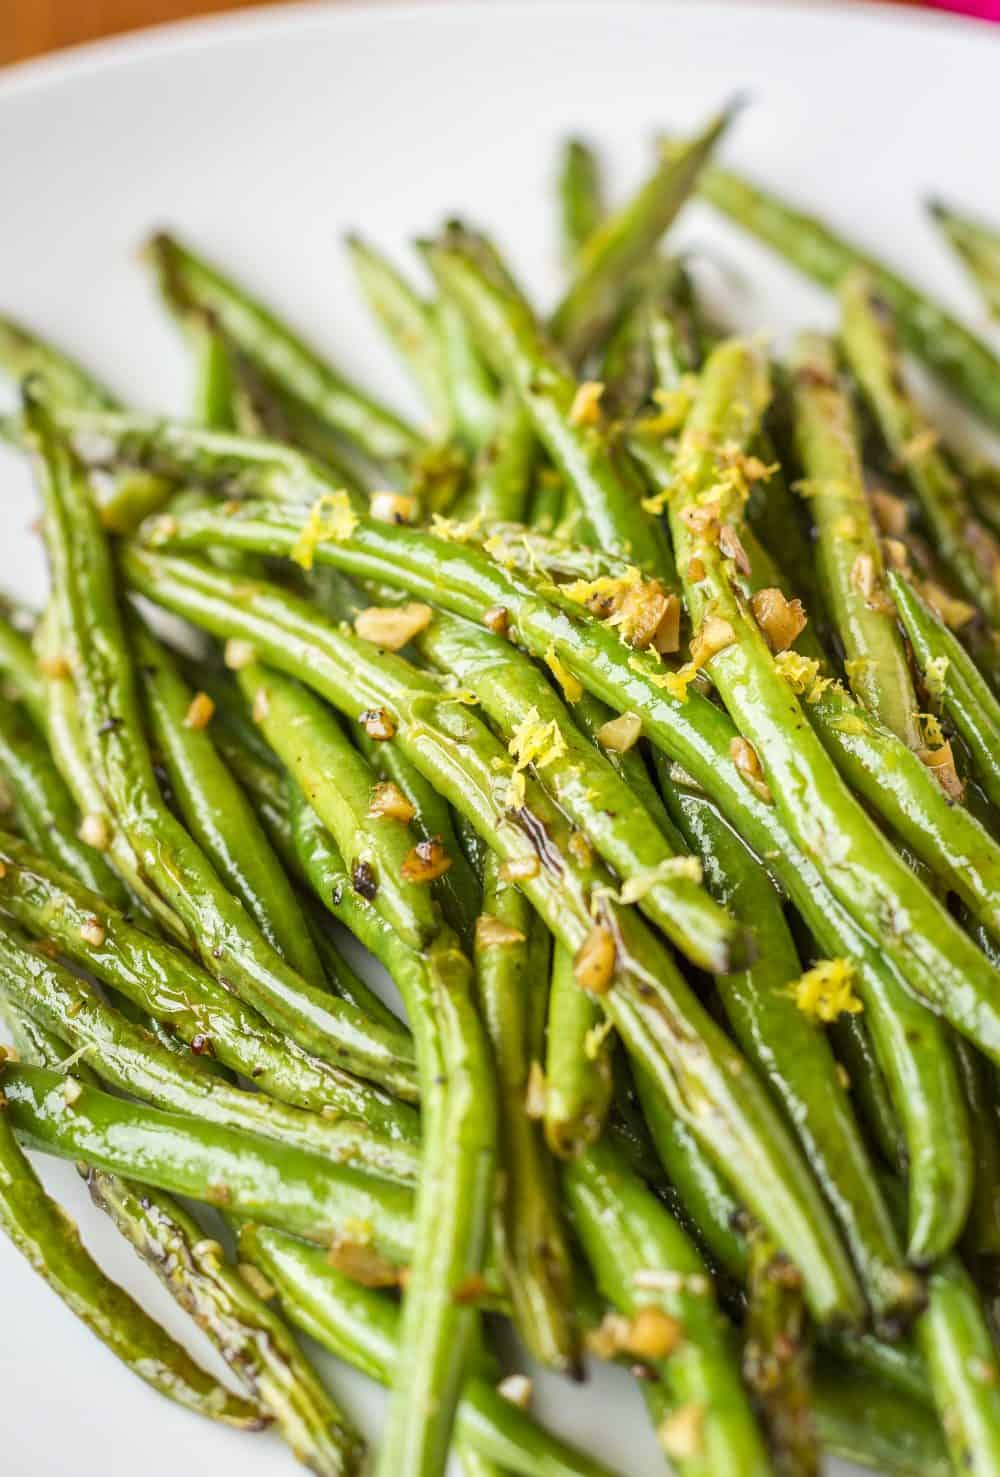 Sautéed Green Beans with Garlic -- adding a little extra raw minced garlic to these sautéed green beans at the end of cooking gives them an extra unexpected punch of flavor… Just 4 ingredients and under 10 minutes from stovetop to table makes this a super easy side dish! | fresh green beans | green beans recipe | healthy green beans | easy green beans | how to cook green beans | find the recipe on unsophisticook.com